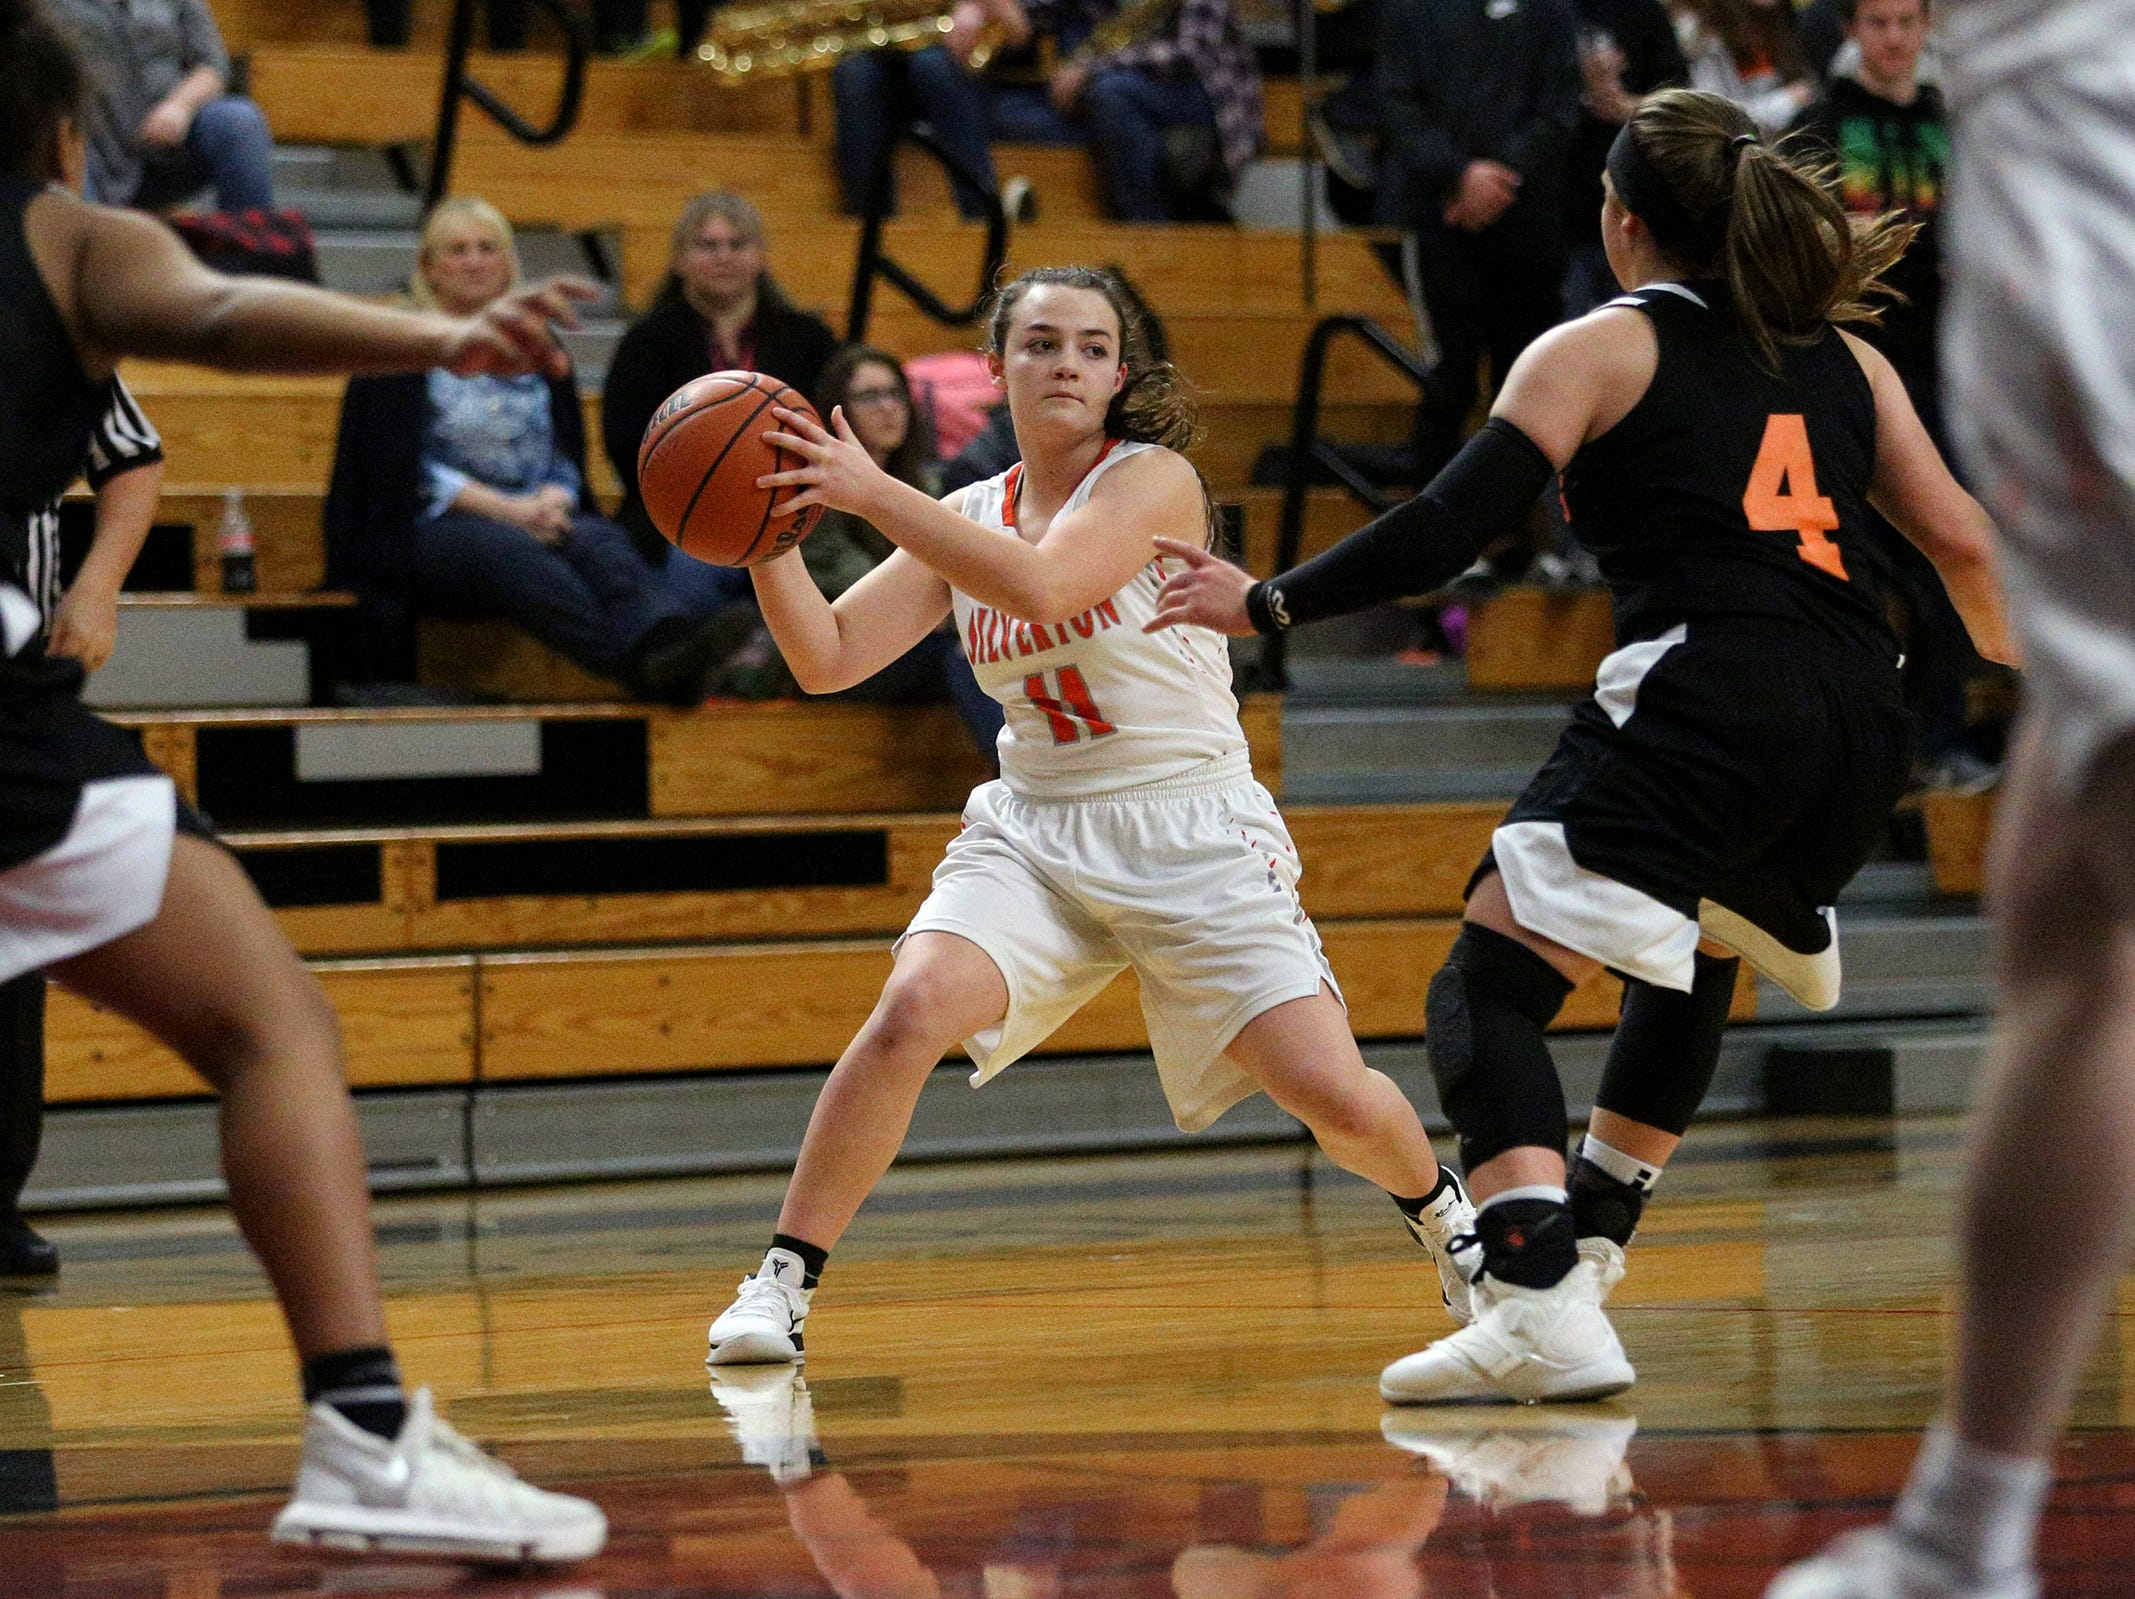 Silverton's Lilly Horner (11) during the Dallas High School vs. Silverton High School girls basketball game in Silverton on Tuesday, Dec. 8, 2019.